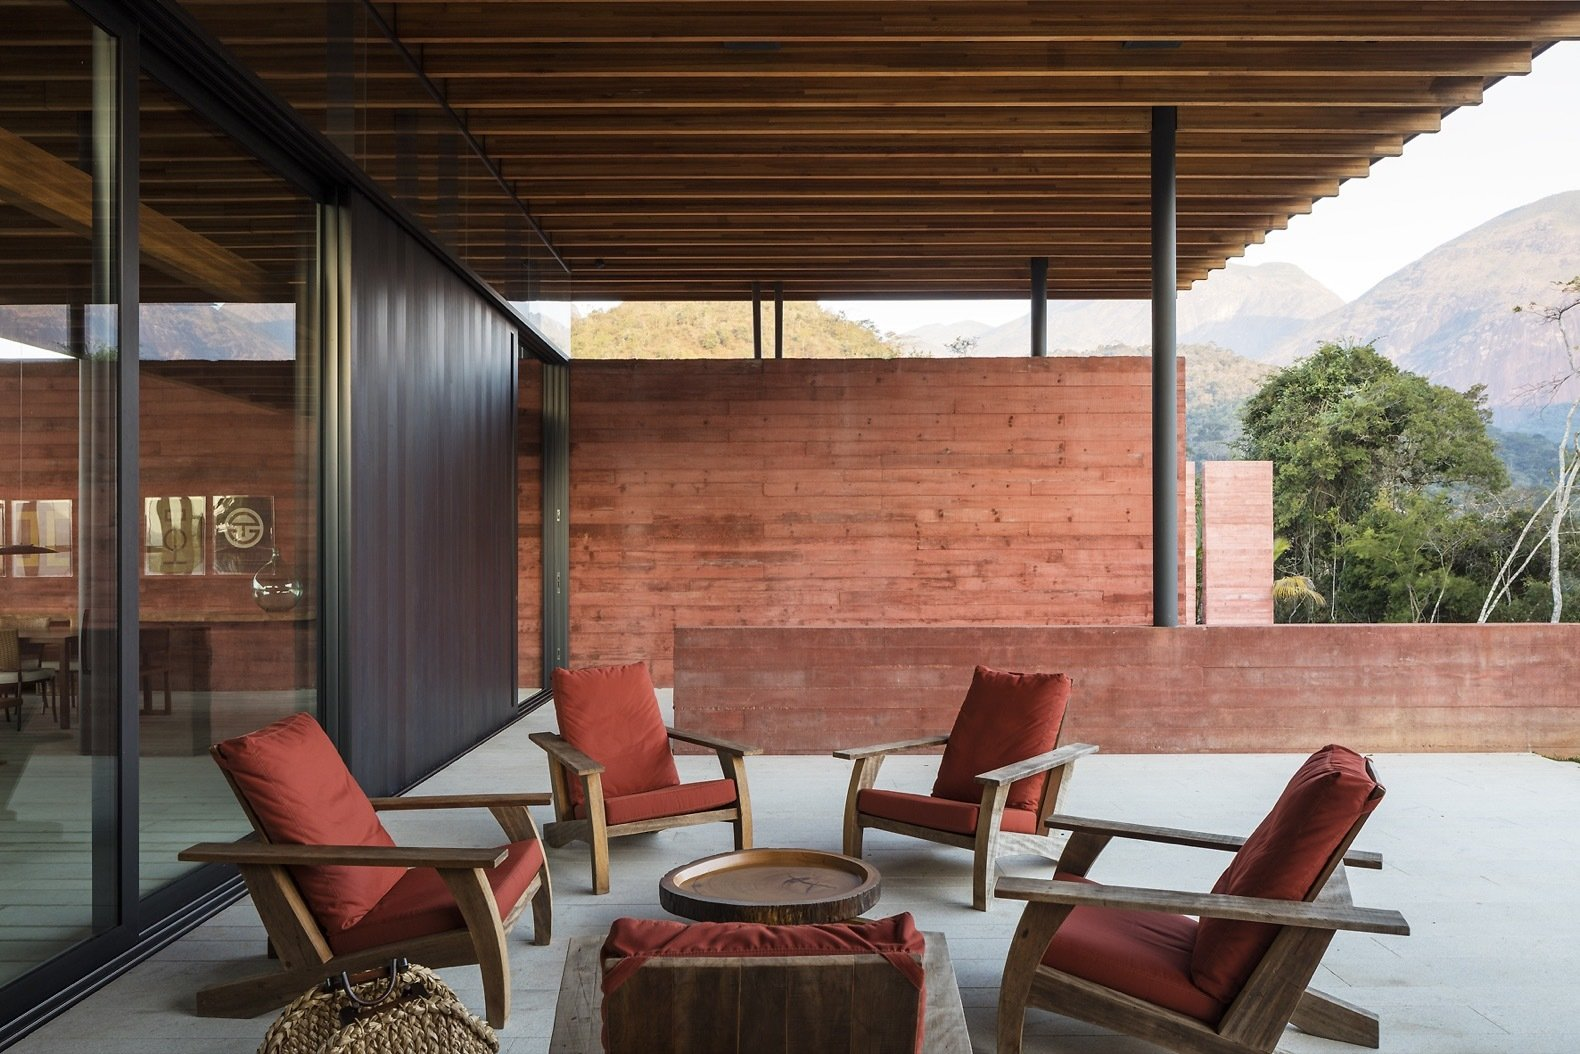 Outdoor, Trees, Pavers Patio, Porch, Deck, Small Patio, Porch, Deck, and Side Yard The veranda on the southwest side of the home is shielded from the elements by the roof. The chairs upholstered in red fabric match the pigmented concrete walls.   Photo 8 of 16 in Pigmented Concrete Walls Tie This Home Into the Landscape